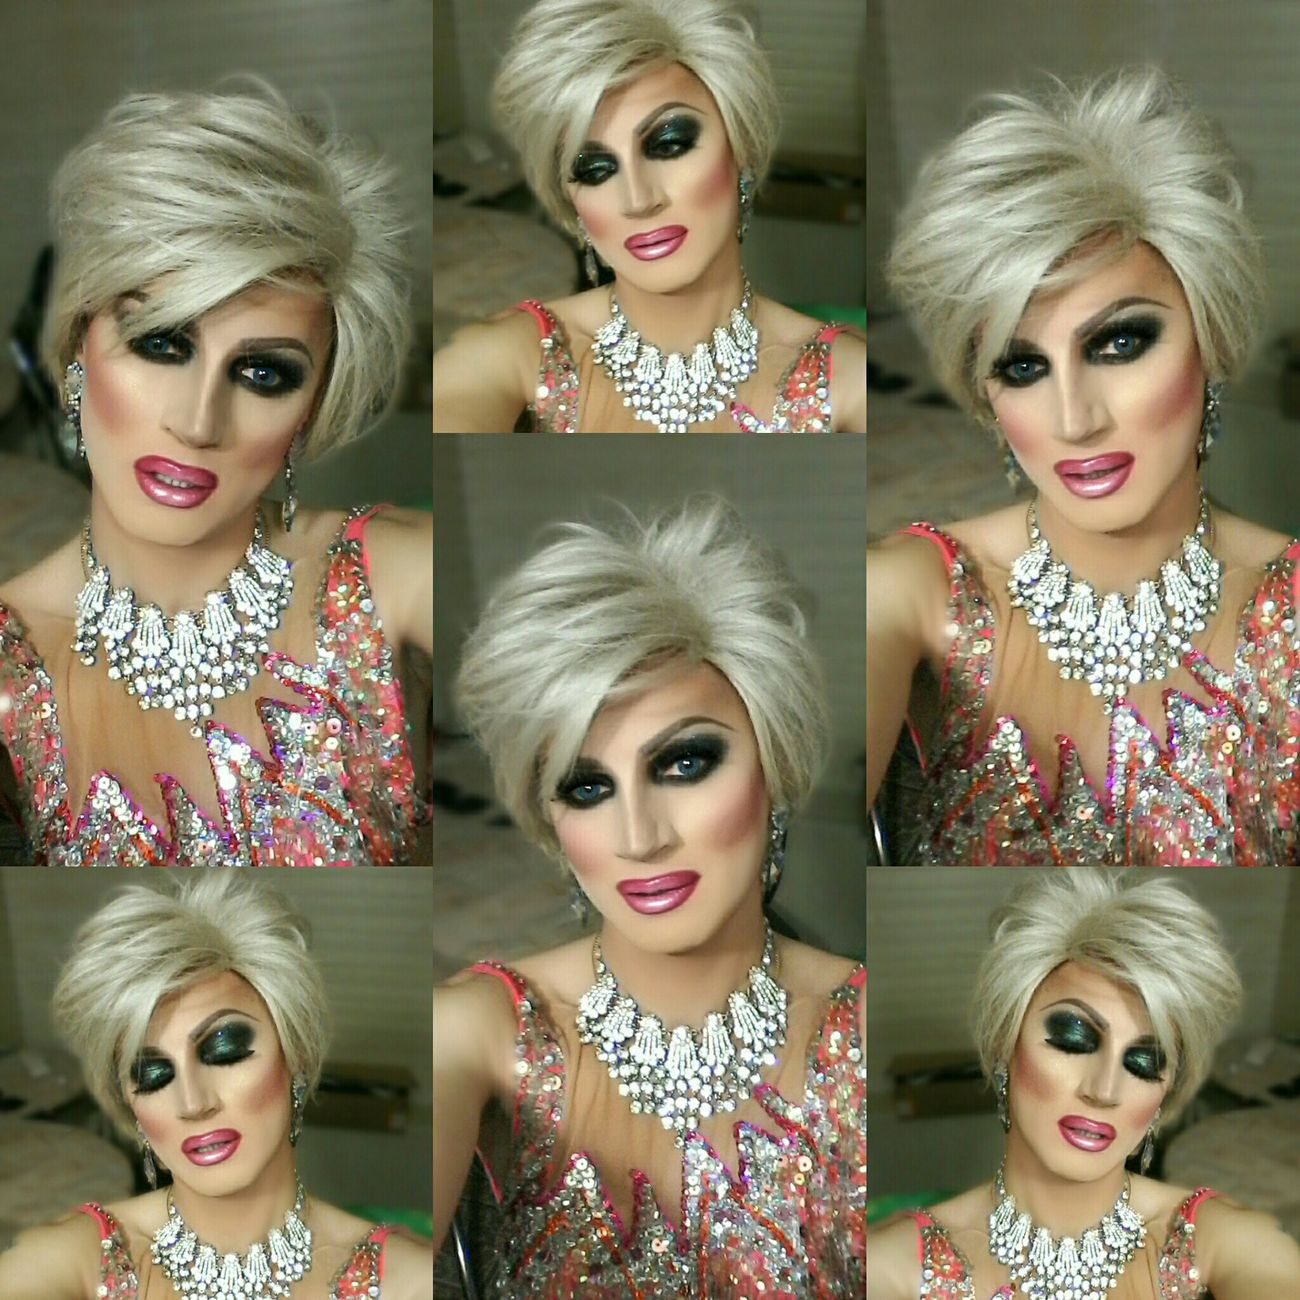 Dragqueen  Hello World Smokyeyes Dragshow Diva Divacrystal LivingForLove Perfect Popular Selfie www.crystalshow.com.ua